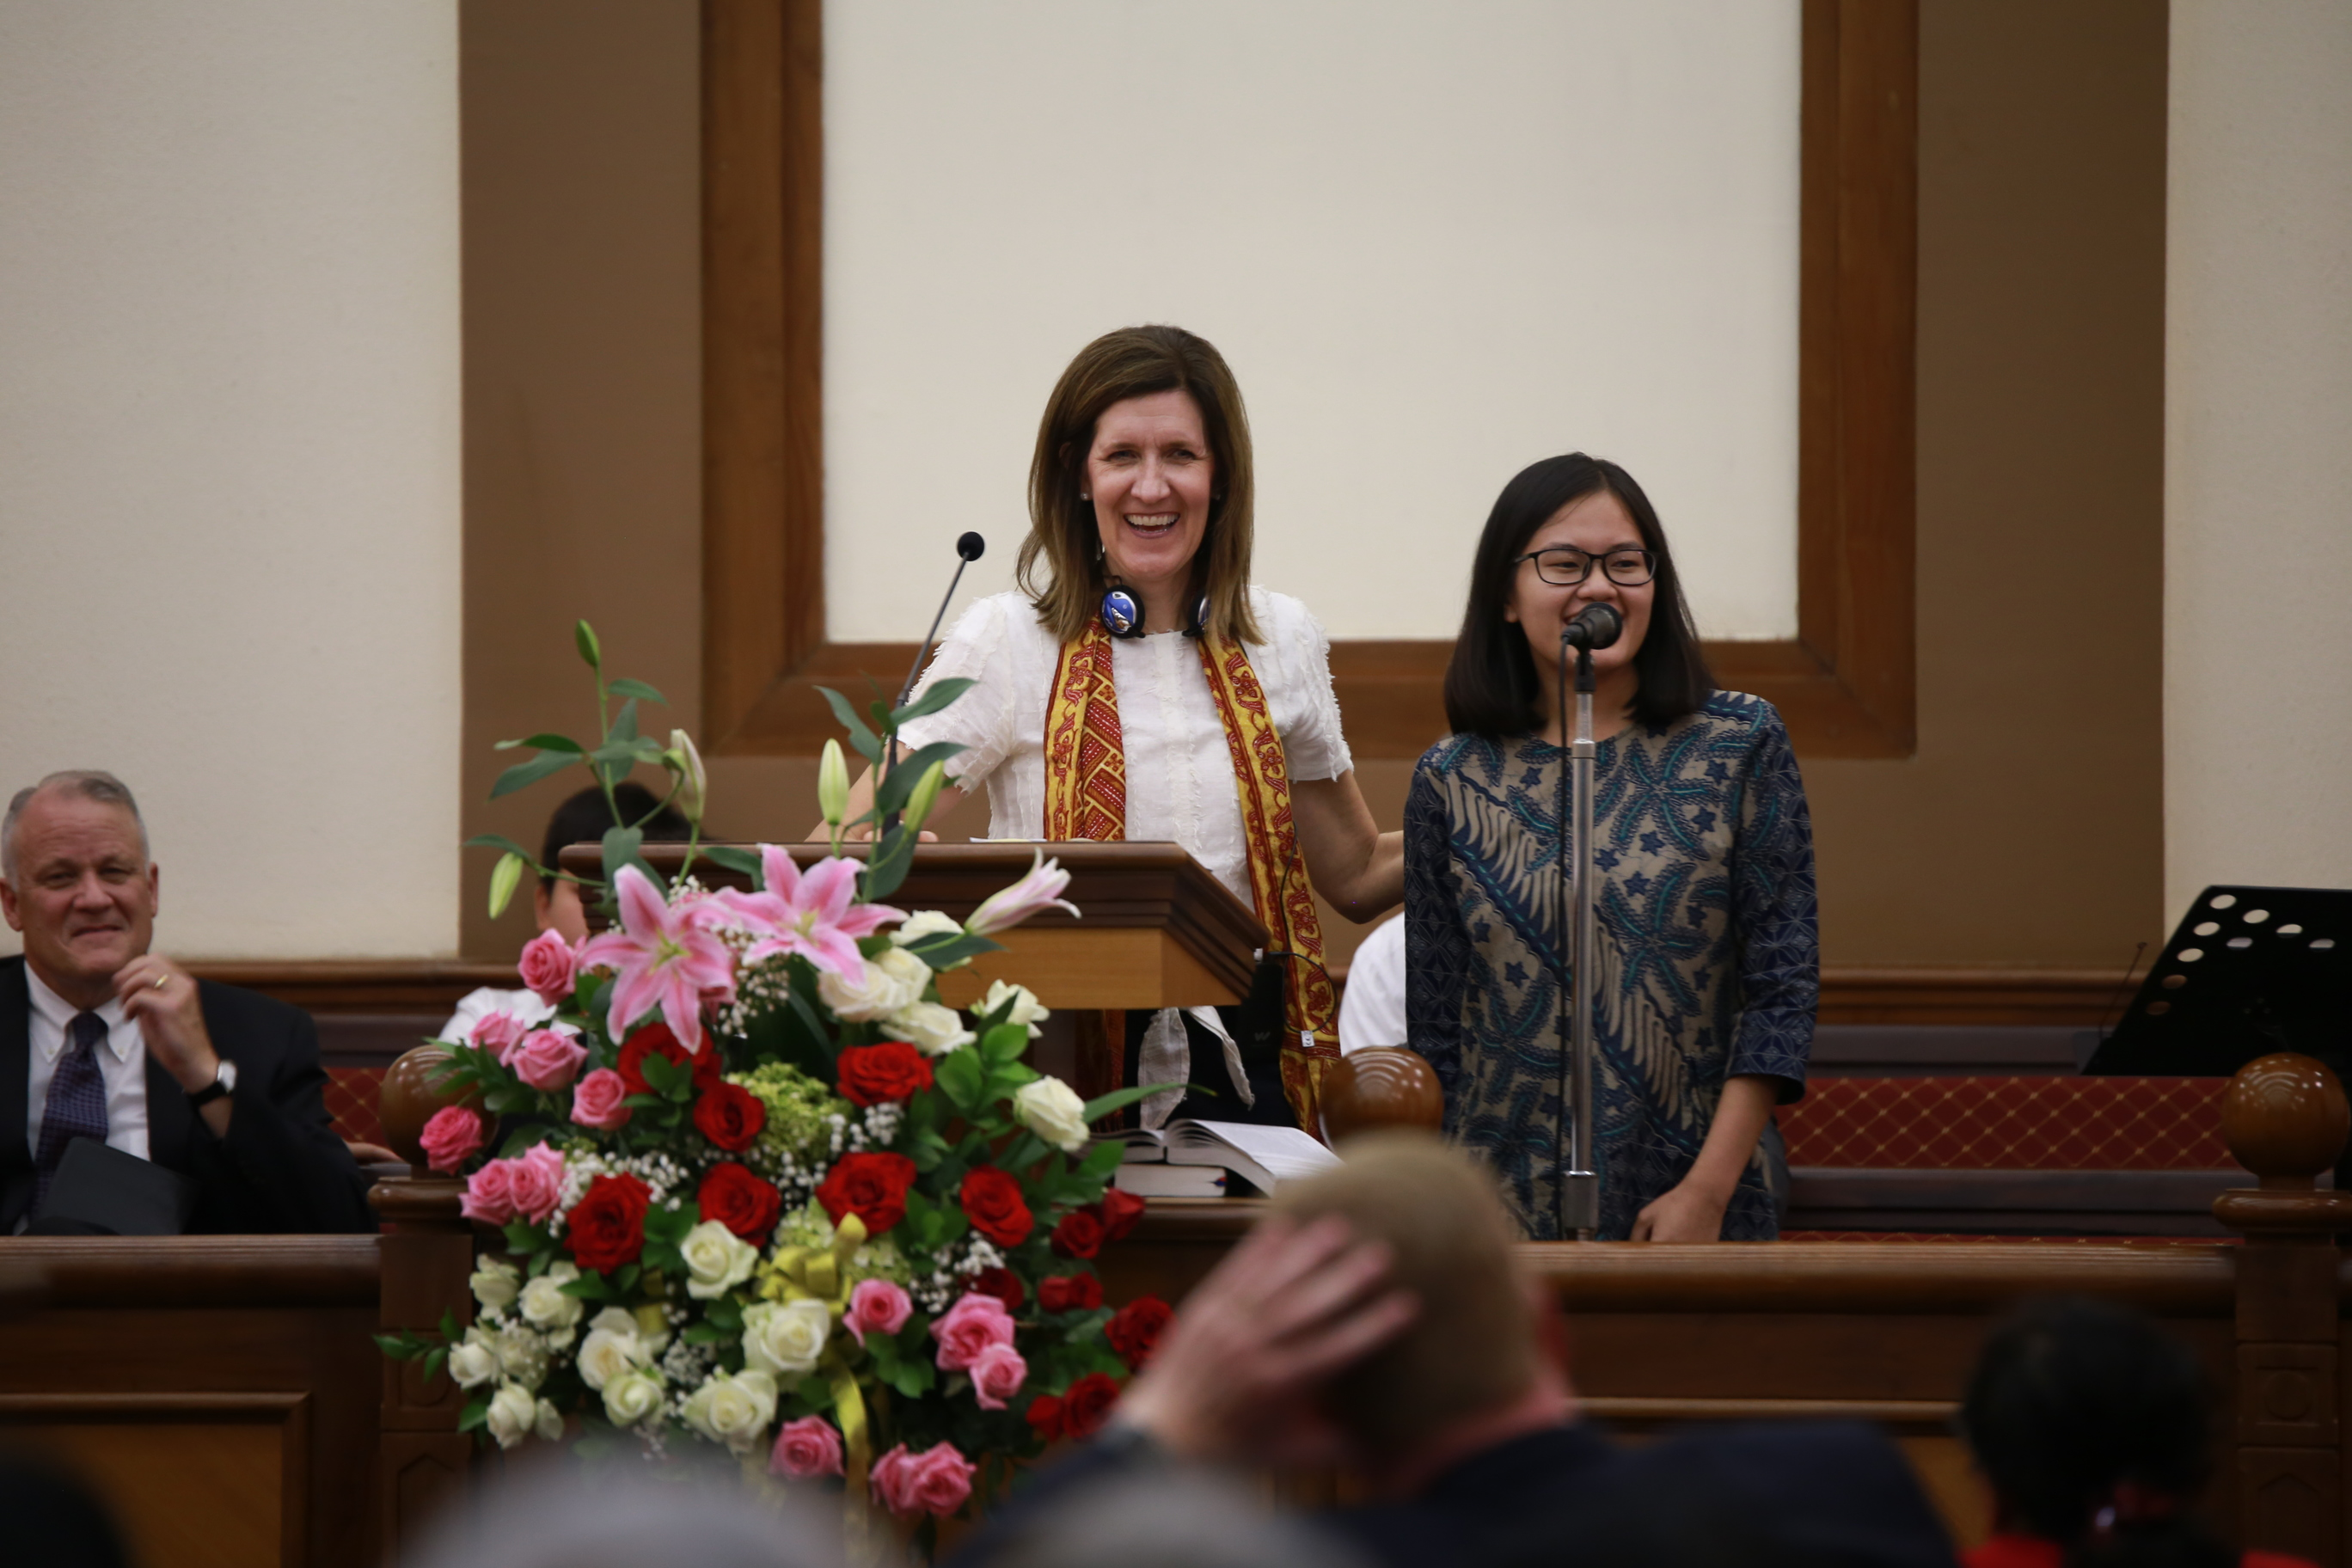 Sister Michelle D. Craig, first counselor in the Young Women general presidency, speaks at a devotional in Jakarta, Indonesia, during a visit to the Asia Area of the Church from Aug. 17 to 24, 2019.